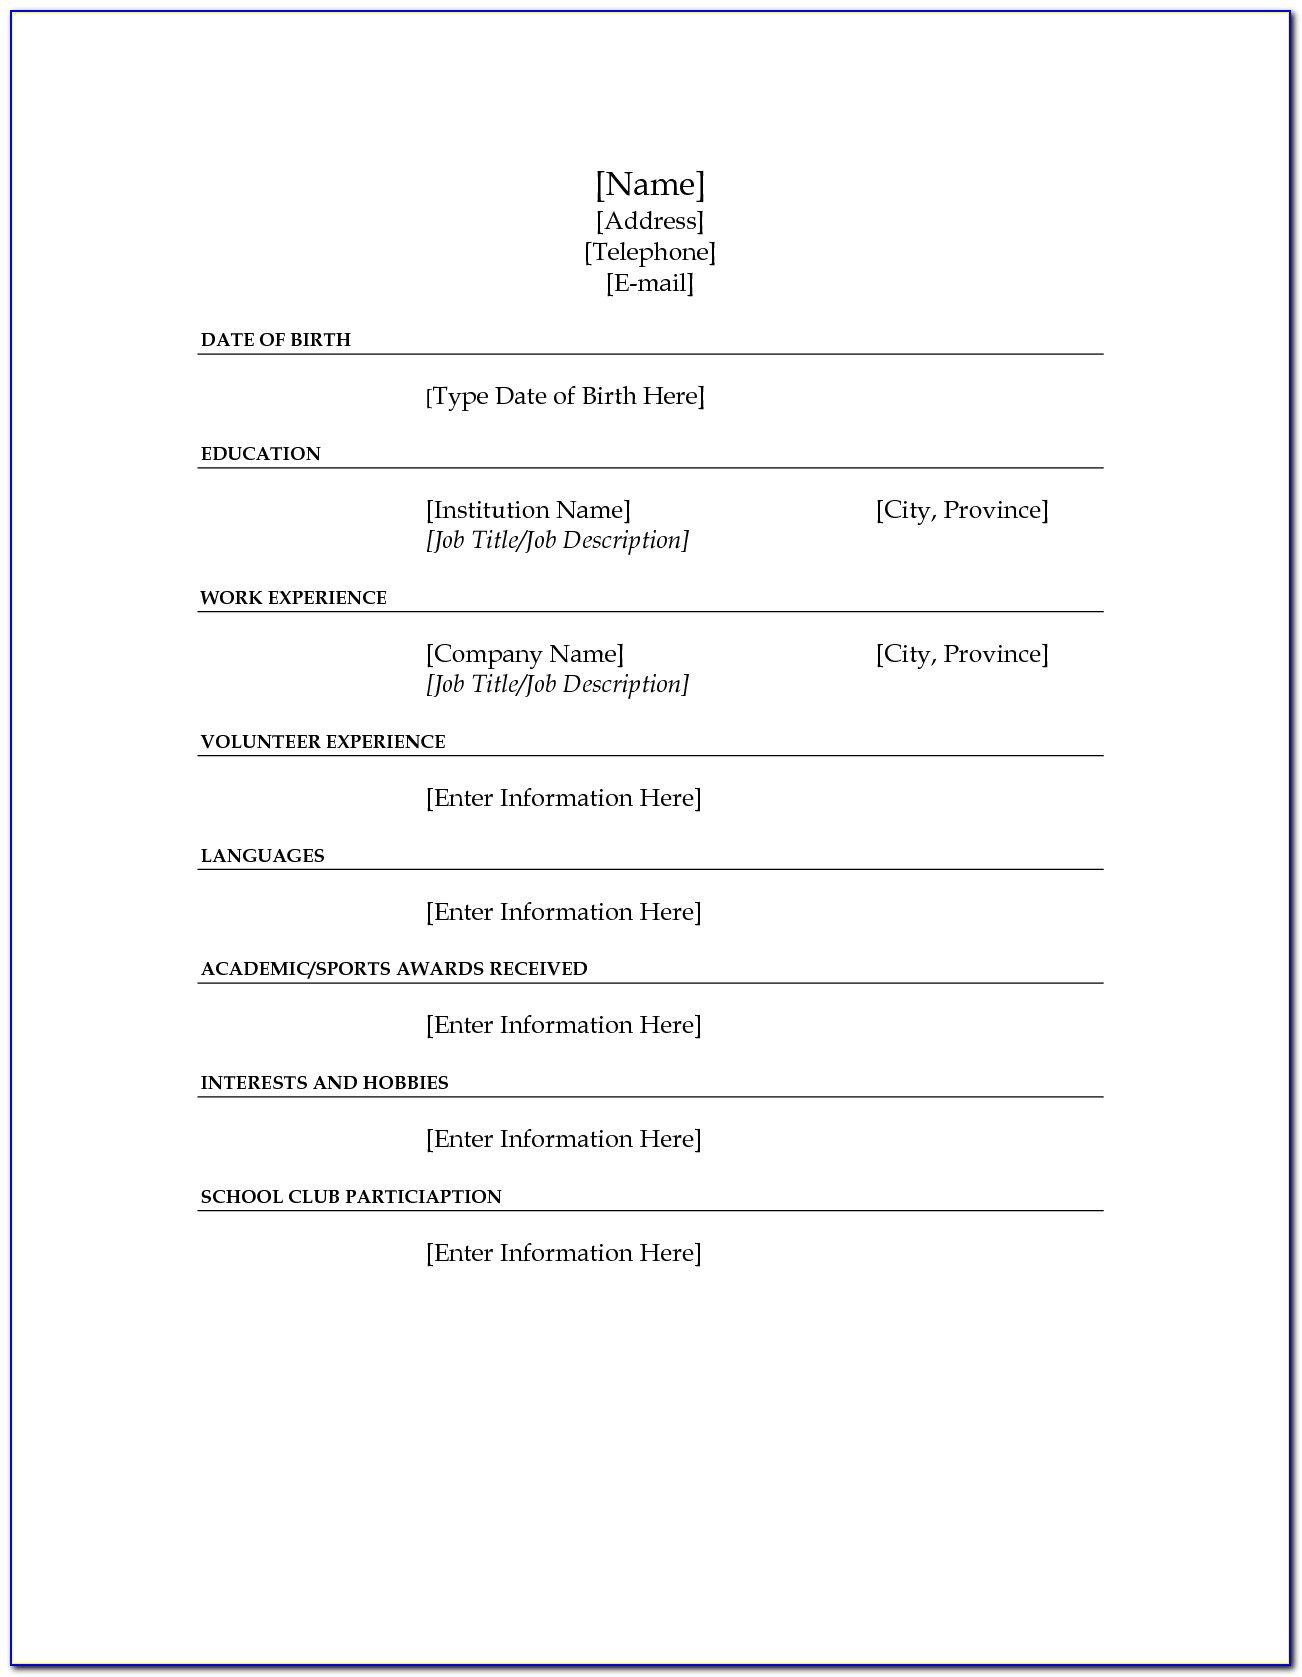 Free Fill In The Blank Resume Templates